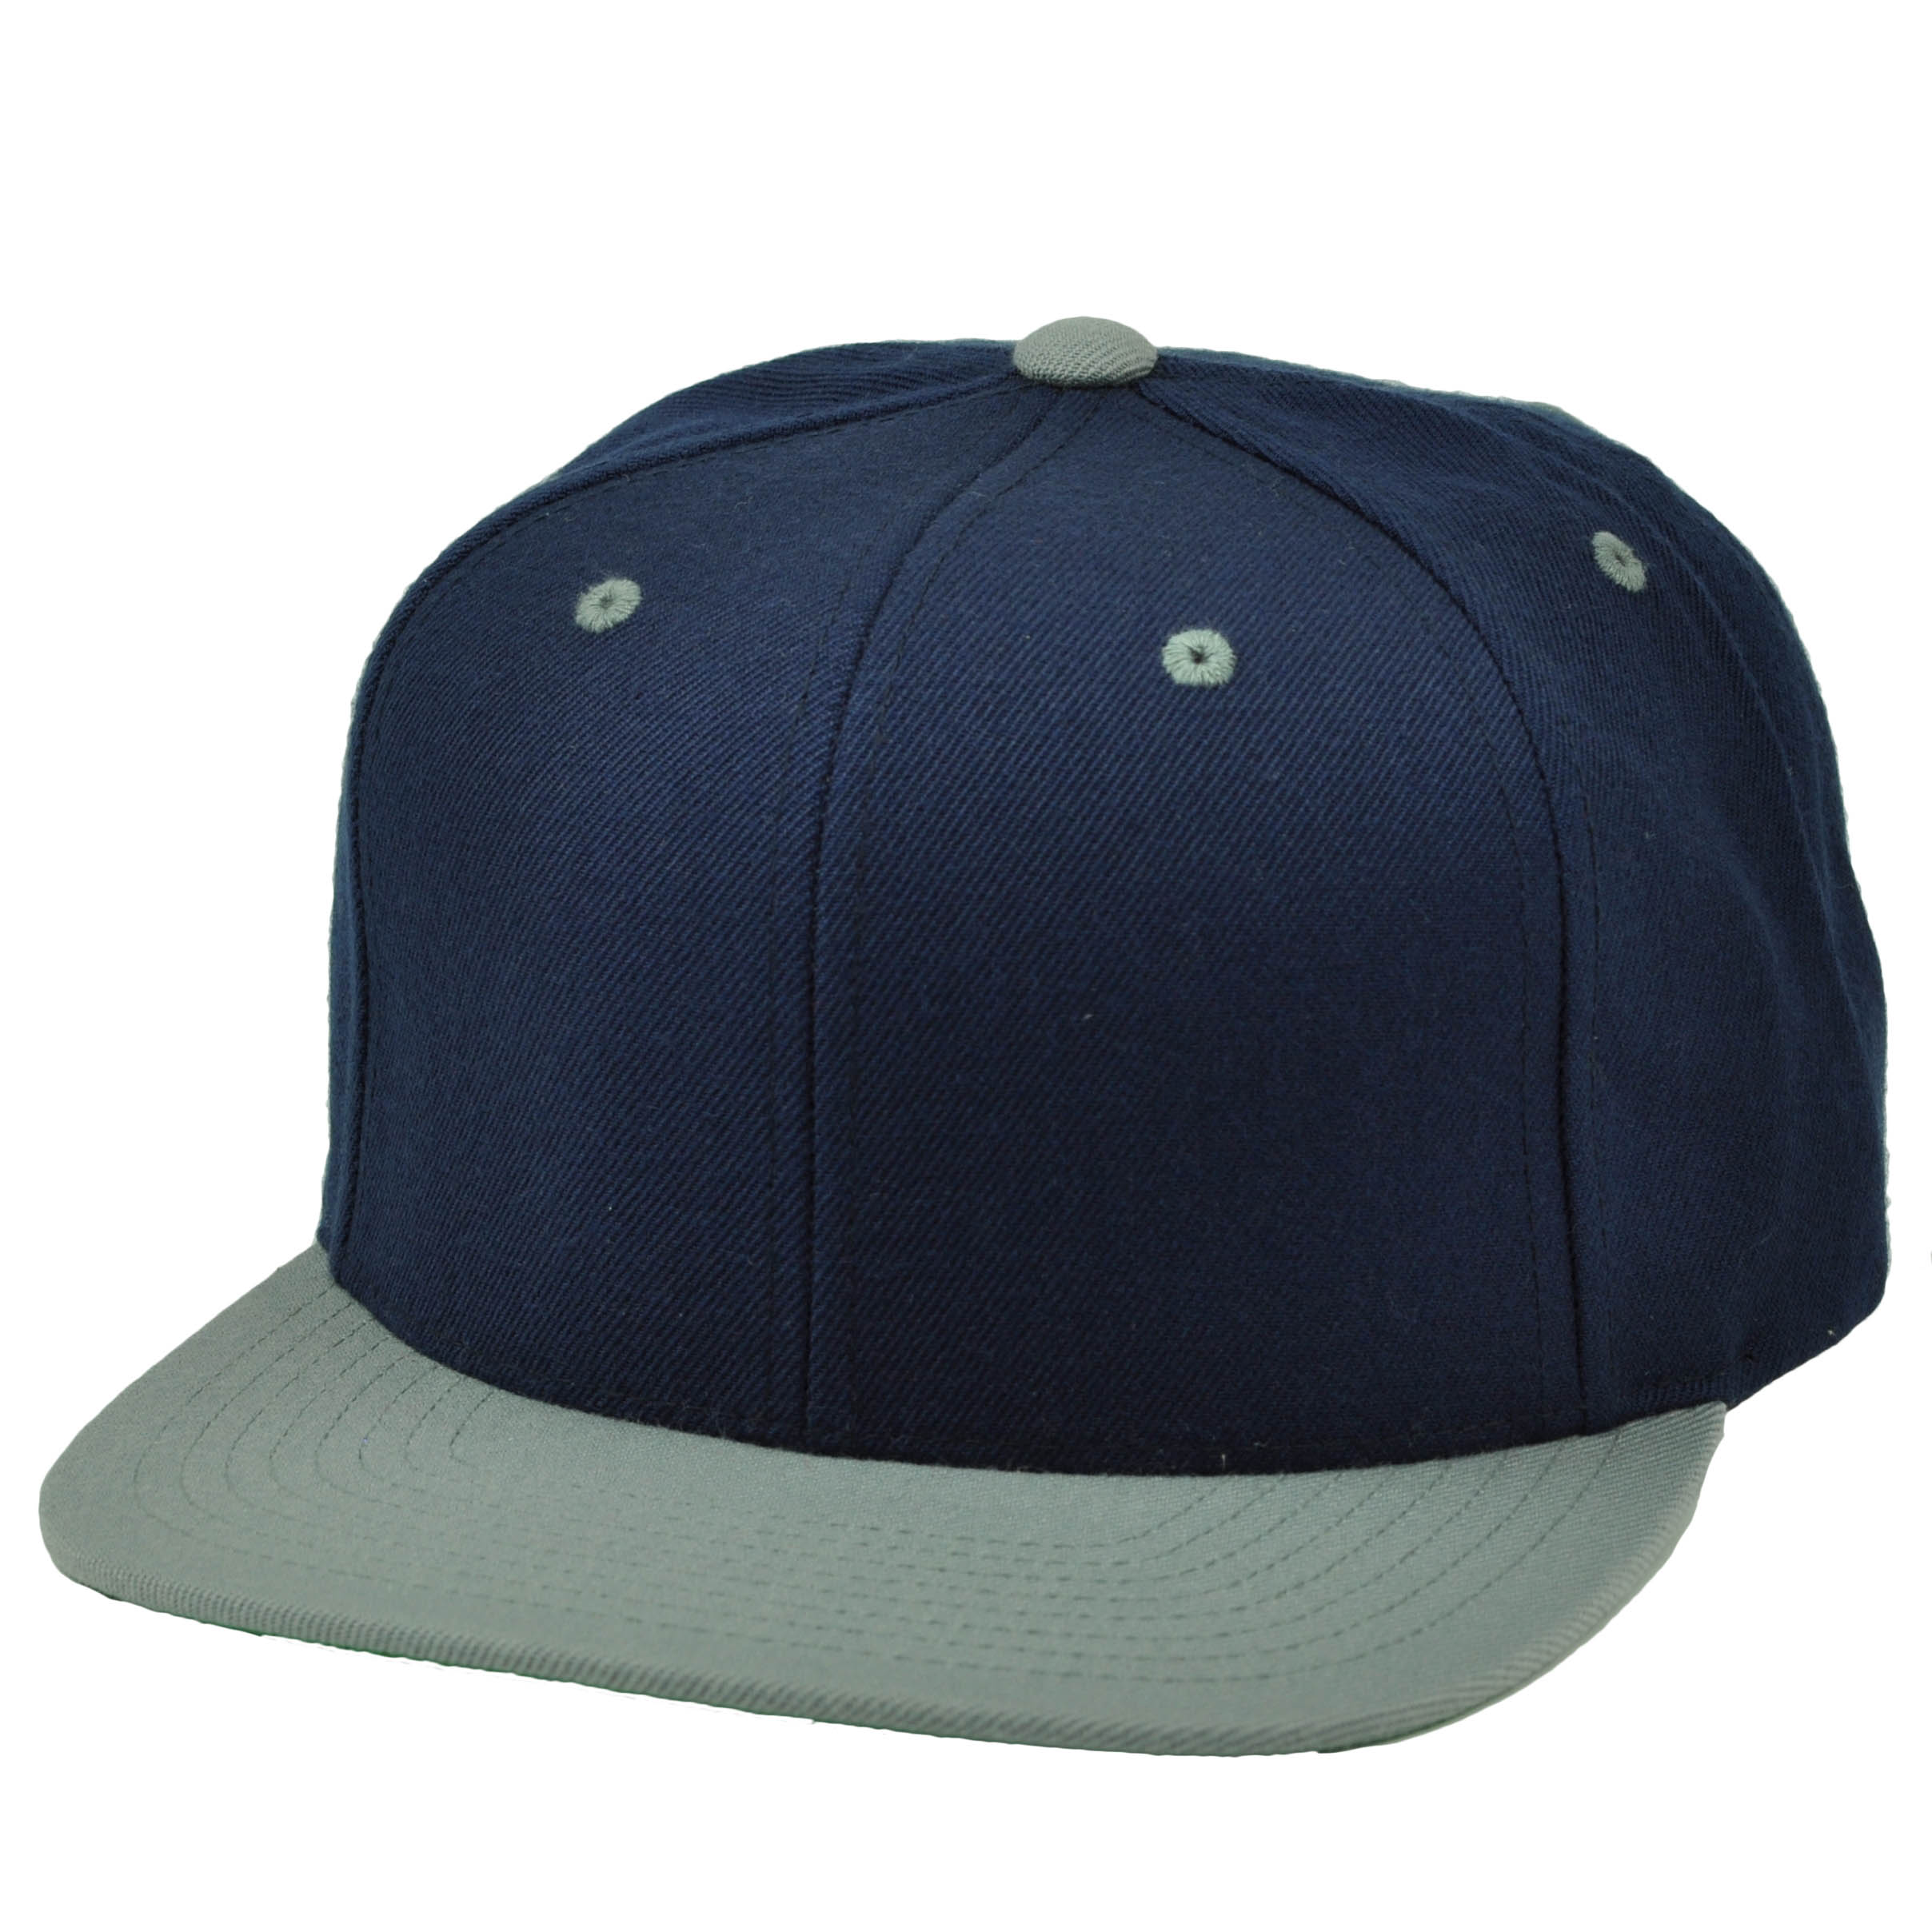 Starter Navy Blue Gray Blank Plain Snapback Hat Cap 2 Tone Adjustable Flat  Bill ad0944ef108